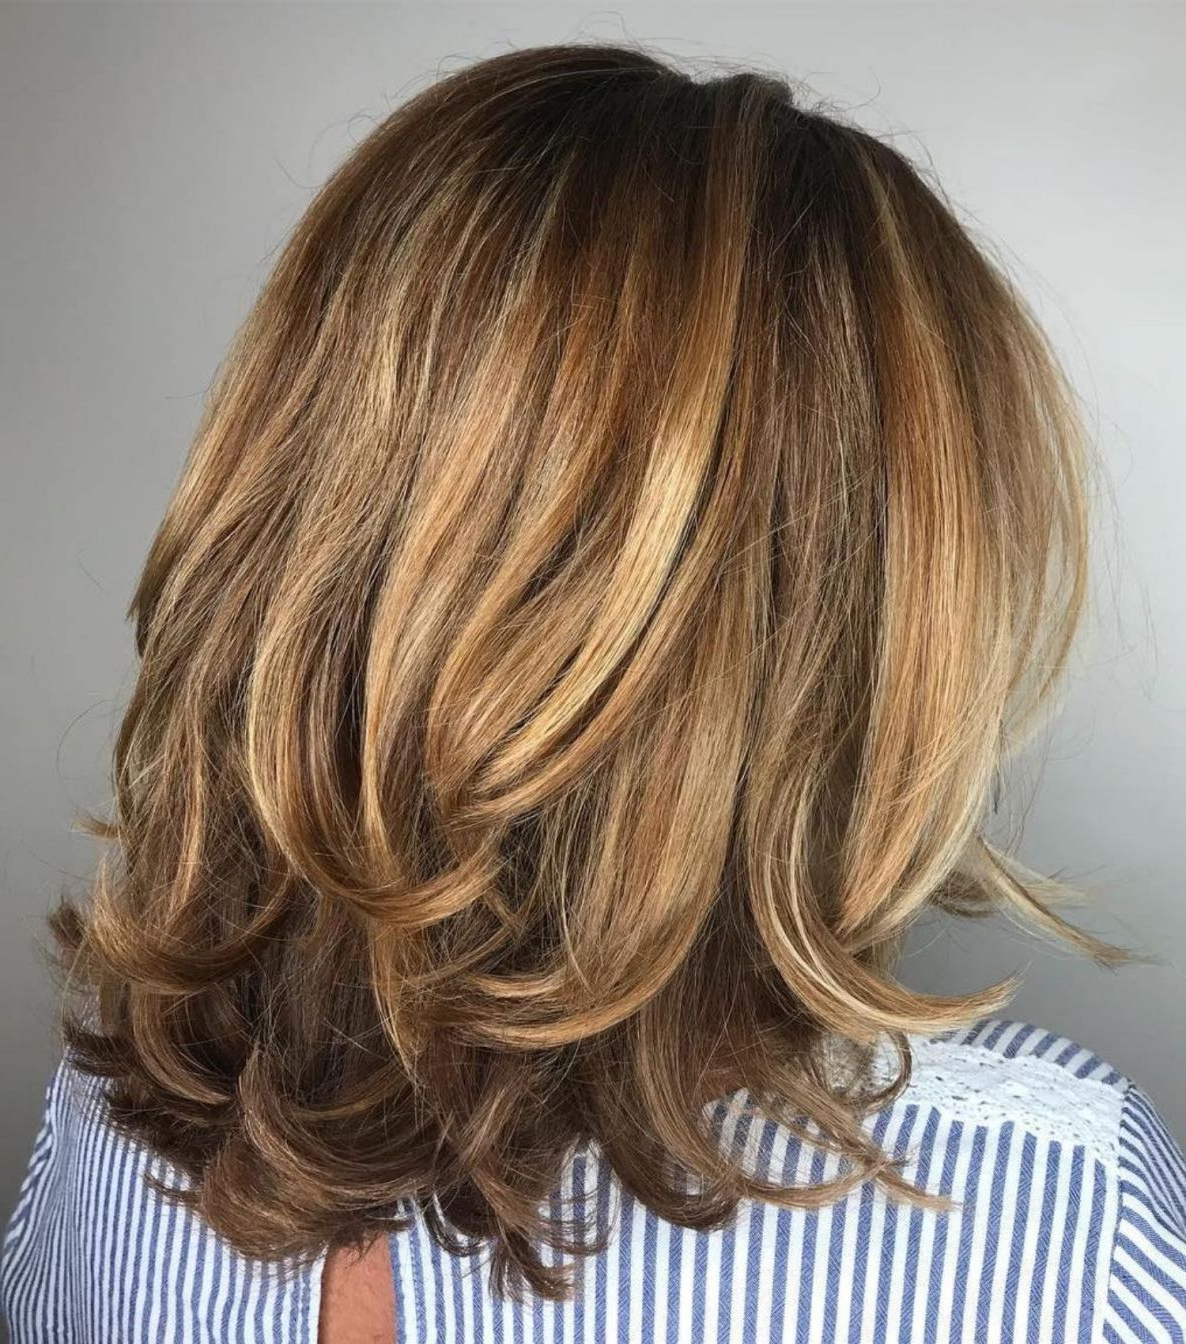 Favorite Warm Brown Hairstyles With Feathered Layers With Regard To 50 Modern Haircuts For Women Over 50 With Extra Zing In (View 7 of 20)